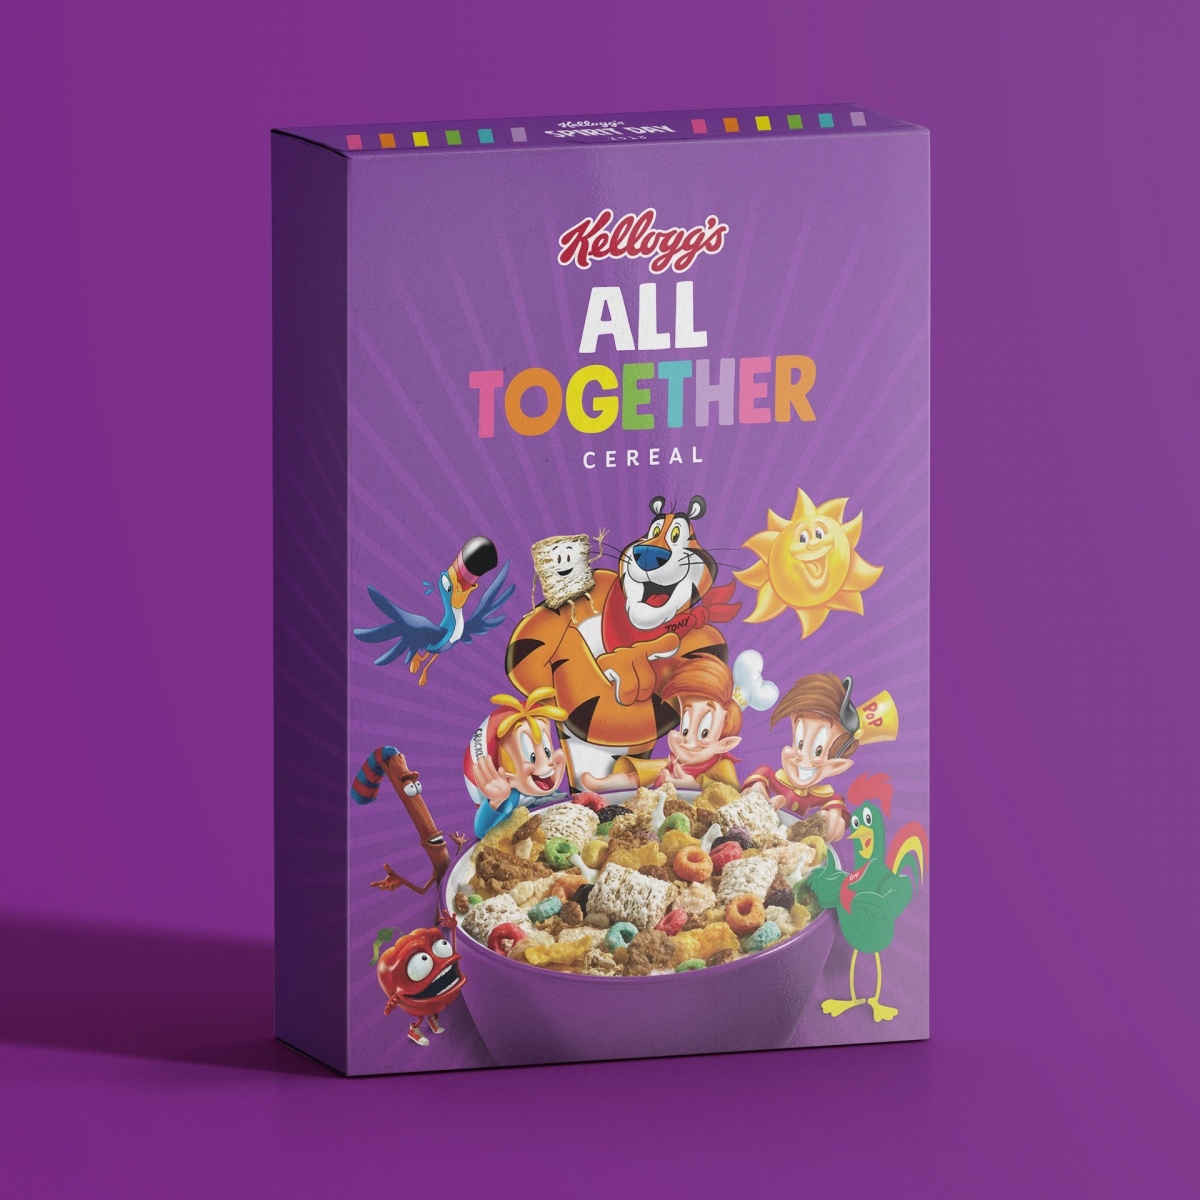 Kellogg's And GLAAD Launch Special Edition 'All Together